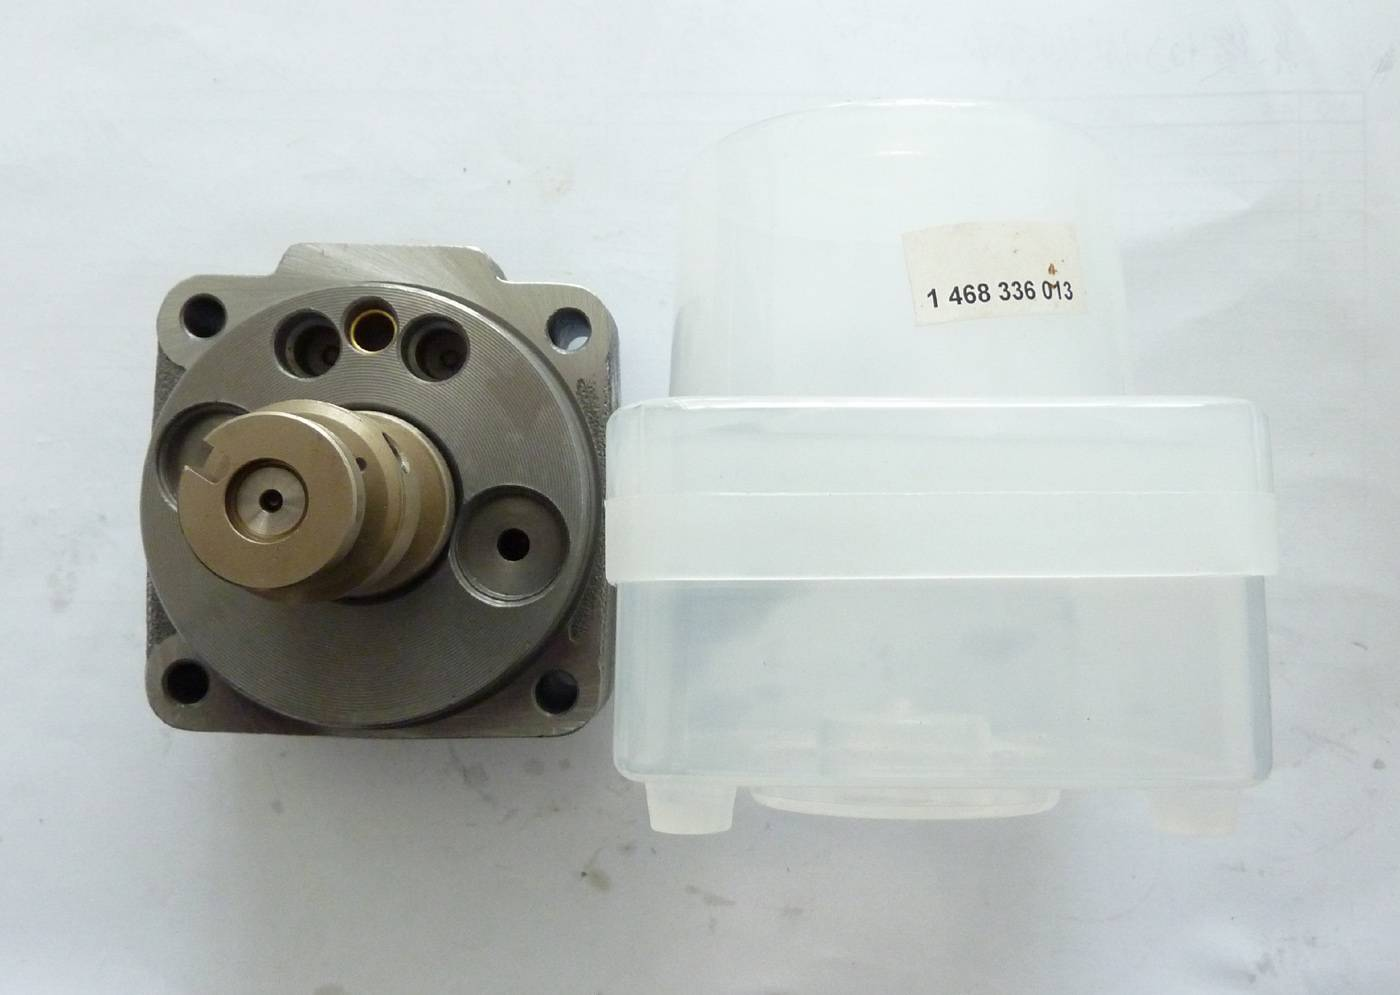 Diesel Fuel Injection Spare Parts (Rotor Head 1468 366 013)